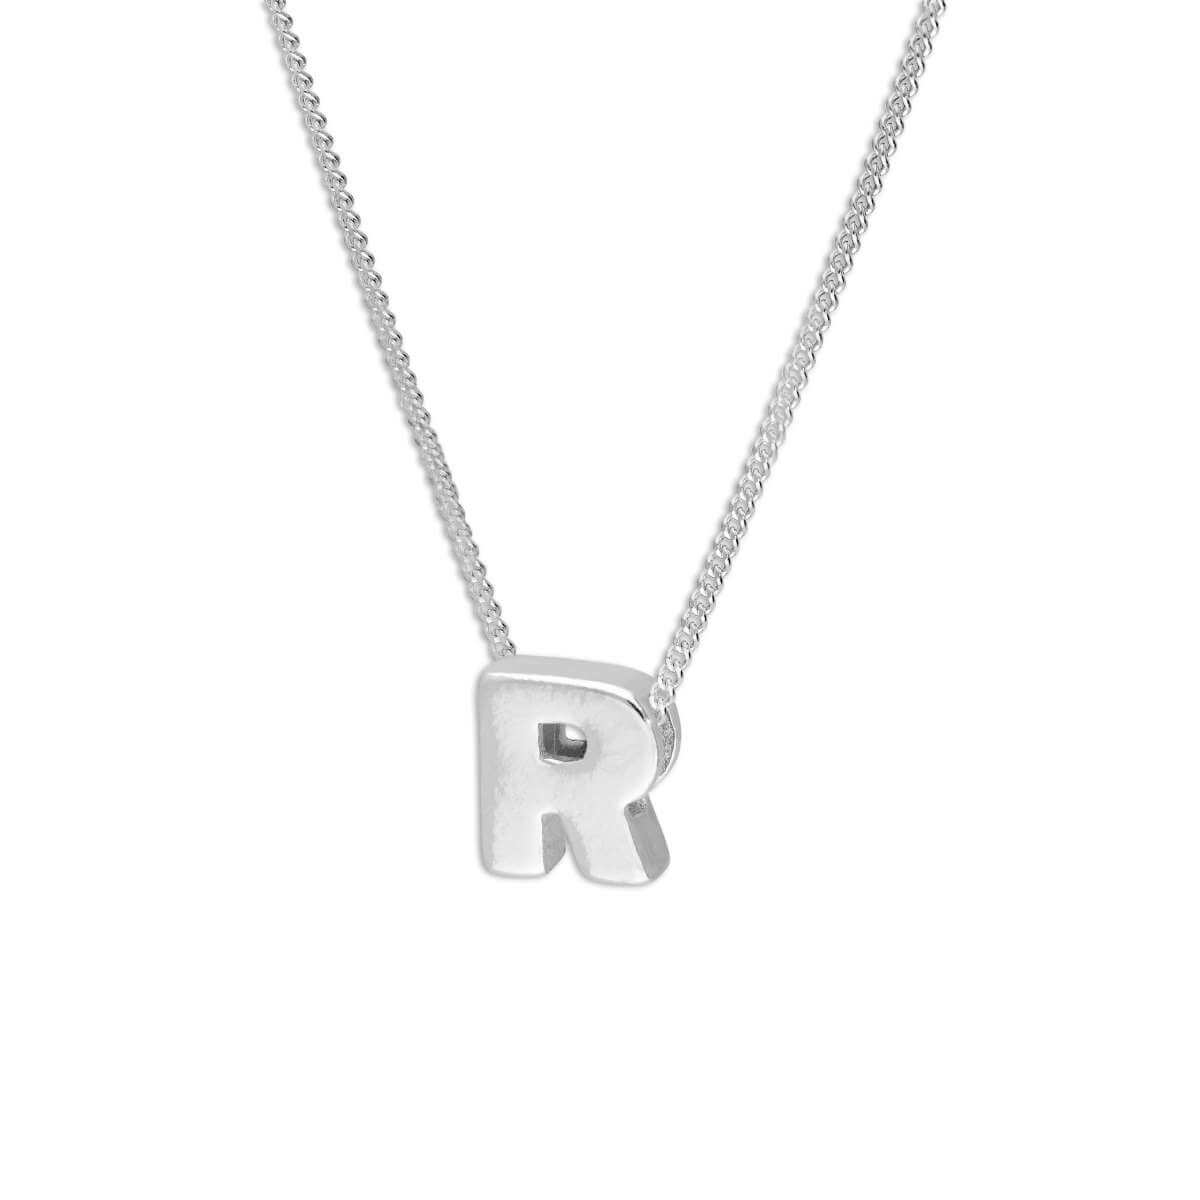 Sterling Silver Alphabet Letter Threader Bead 16+2 Inch Necklace R